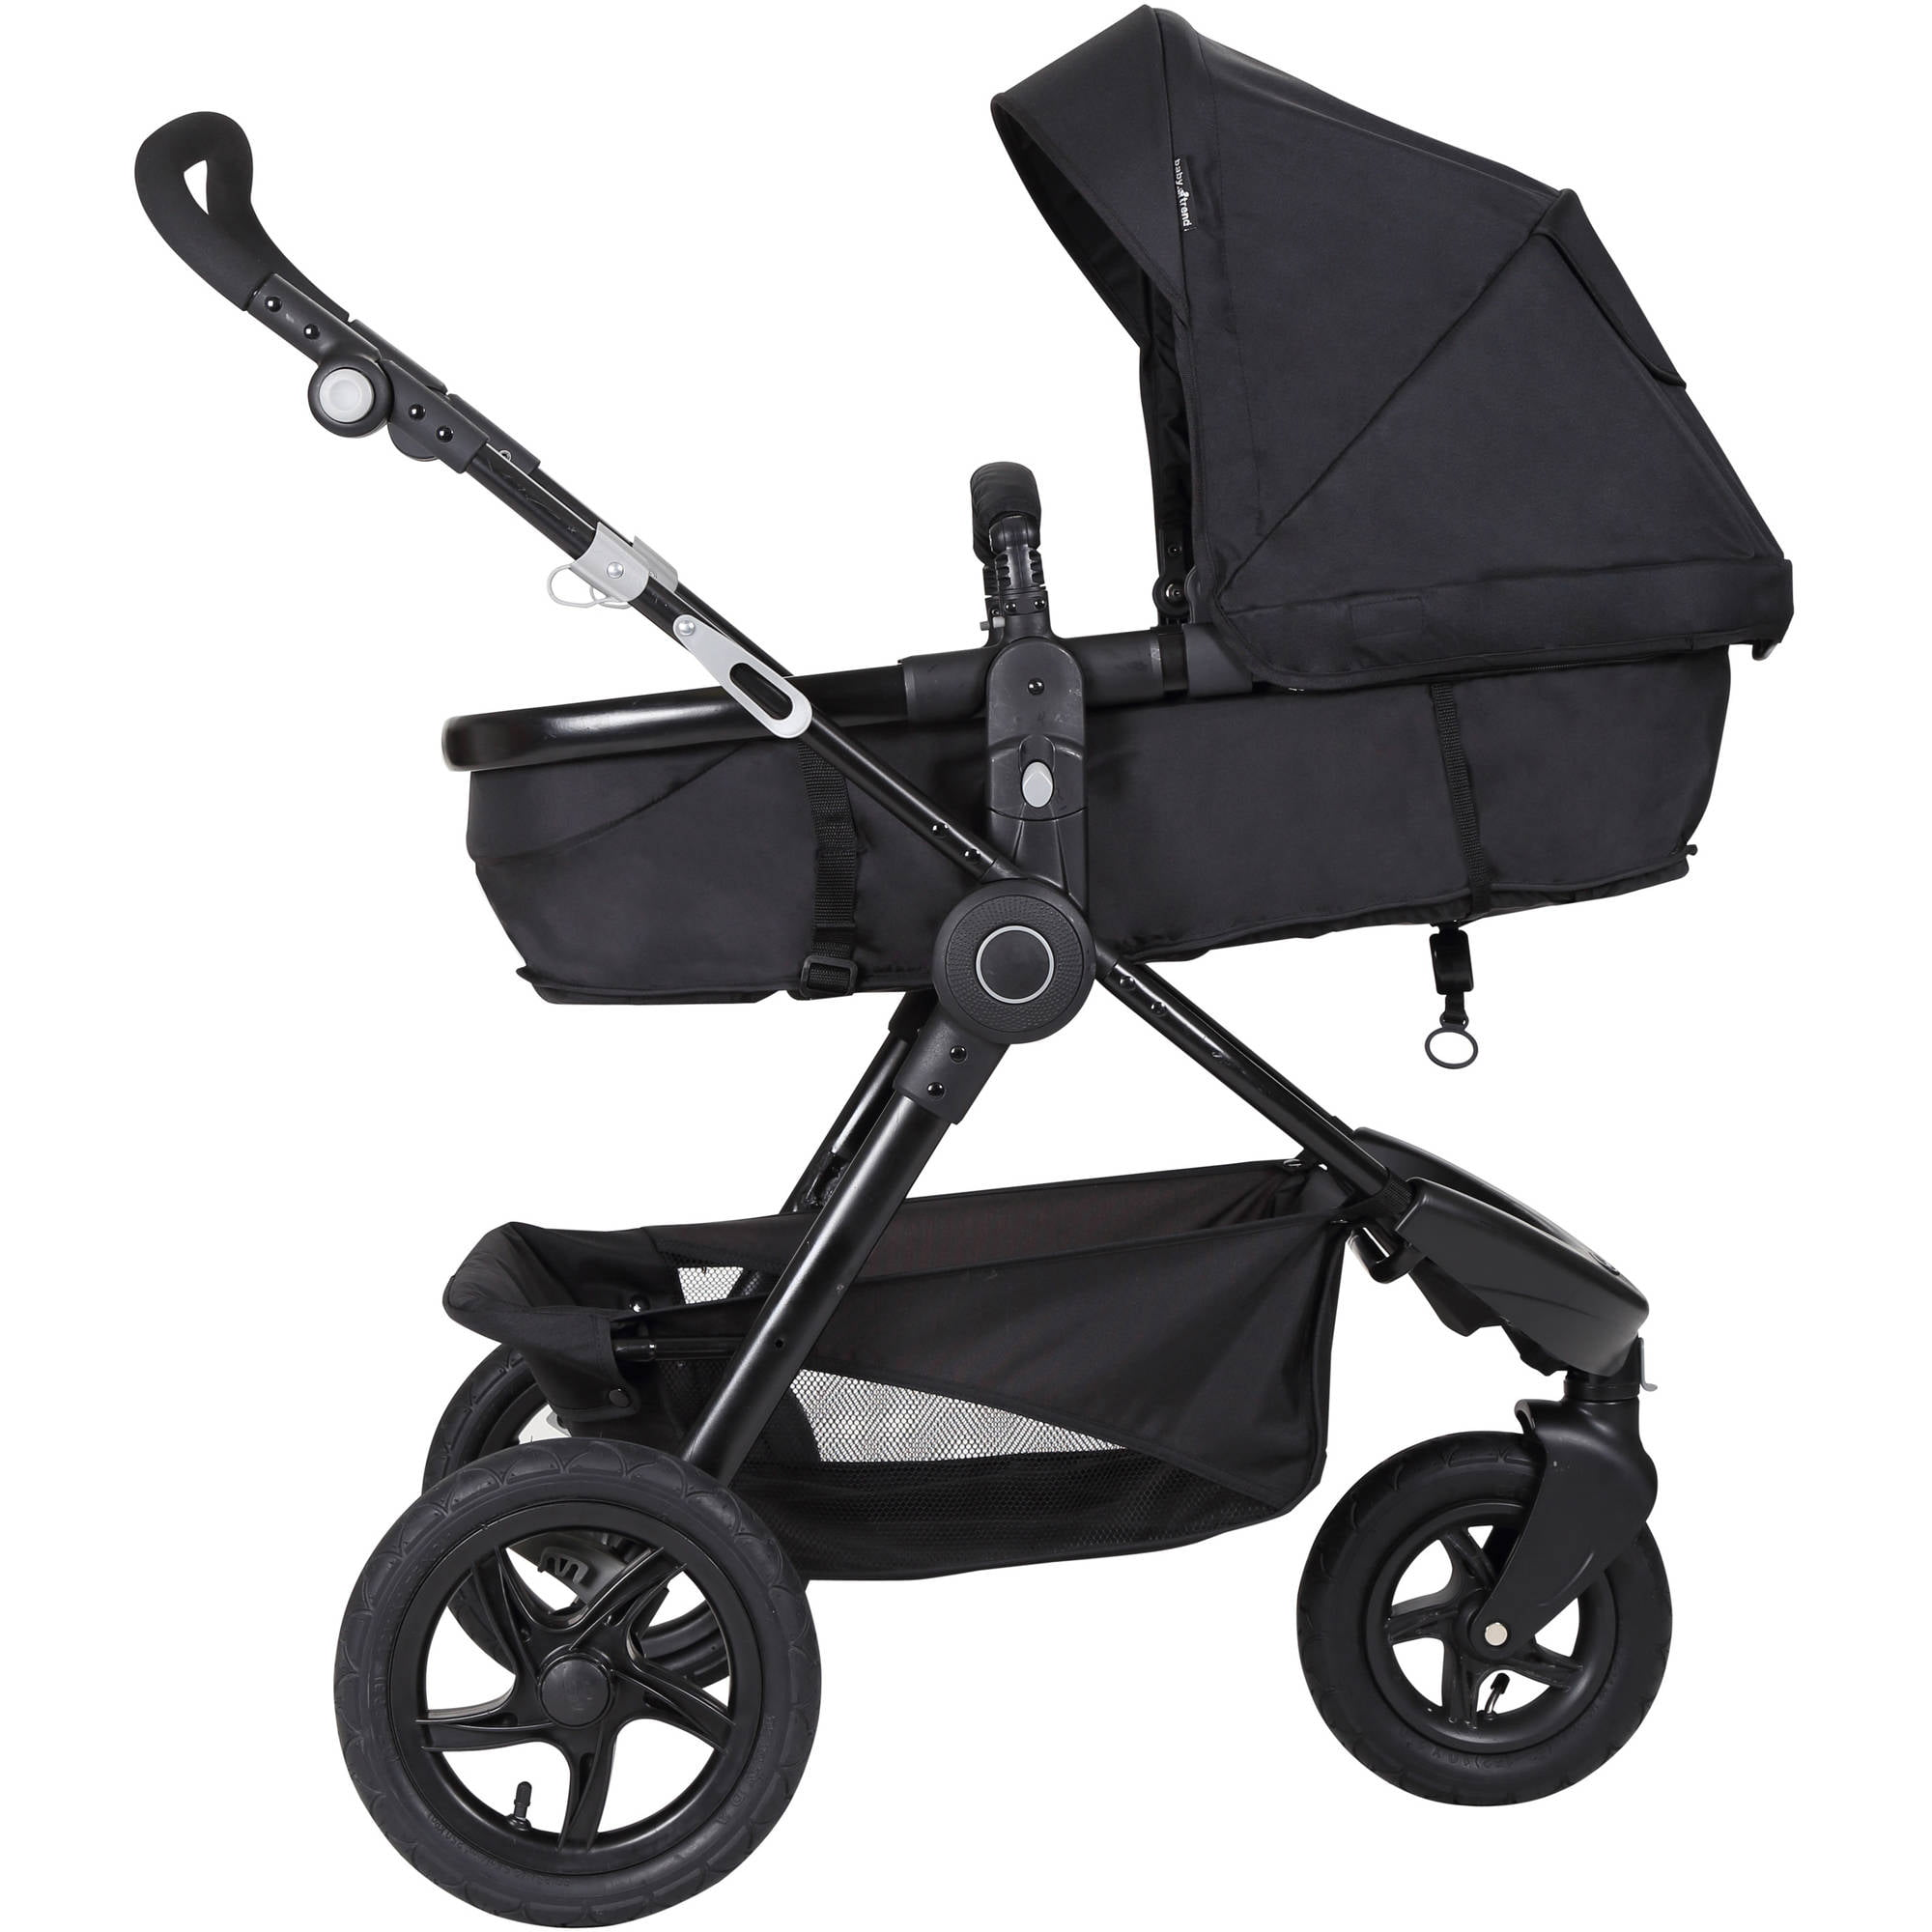 Baby Trend Infant Car Seat And Jogging Stroller